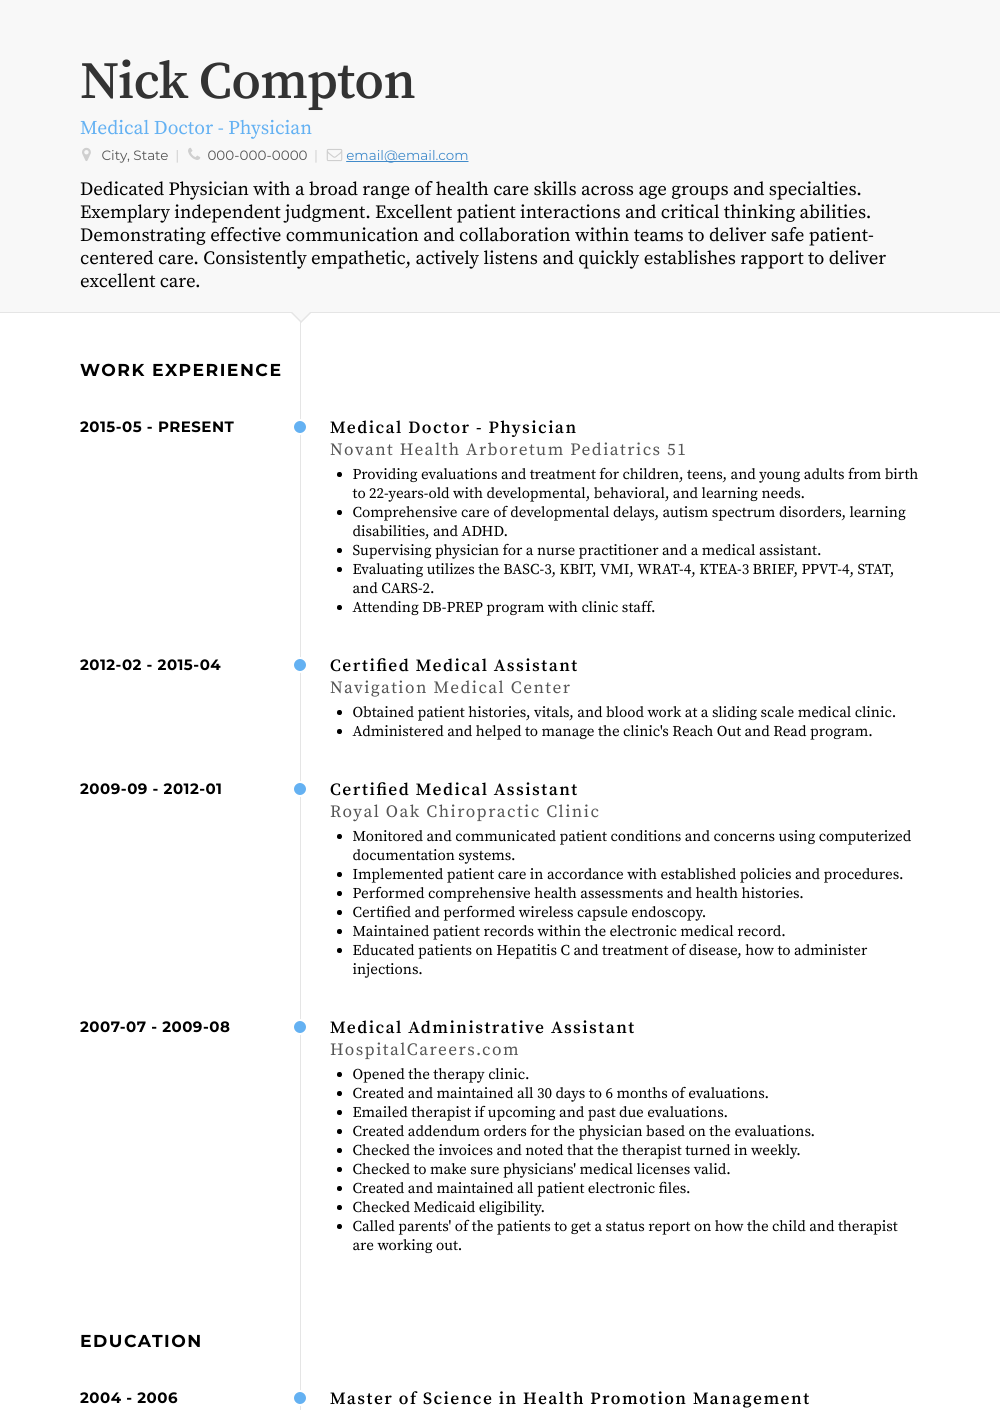 Medical Doctor - Physician Resume Sample and Template